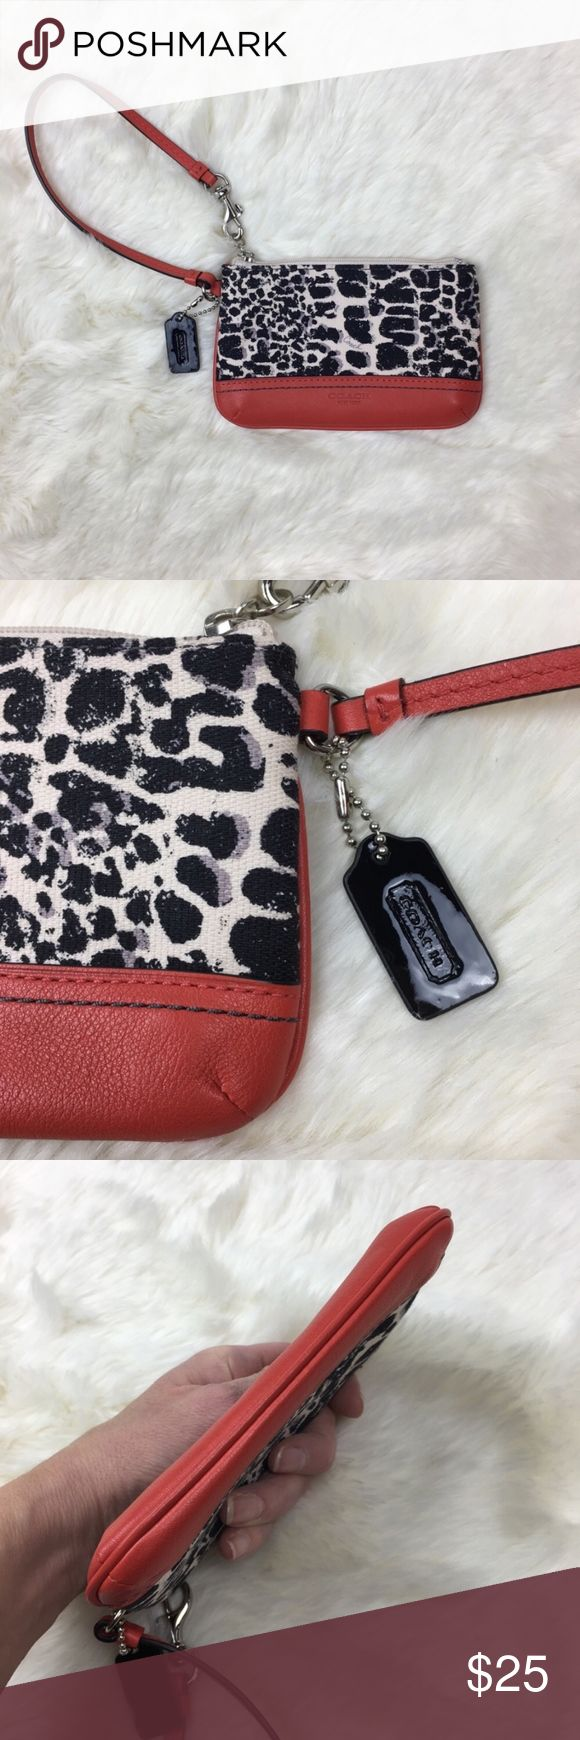 "Coach Legacy Ocelot Print Small Wristlet NWOT COACH Legacy Ocelot Print Small Wristlet #47999. Color: Natural Carnelian MEASURES 6 1/4"" W x 4""L (Approx)   New without tags.  Retired - hard to find.   An exotic print on refined linen gives a fresh look to this classic, leather-trimmed wristlet with pockets inside for all the essentials. Finished with a leather strap and iconic Coach hardware, it can be worn on the wrist or clipped inside a bag.  Never used - cleaned interior Zip Top Closure…"